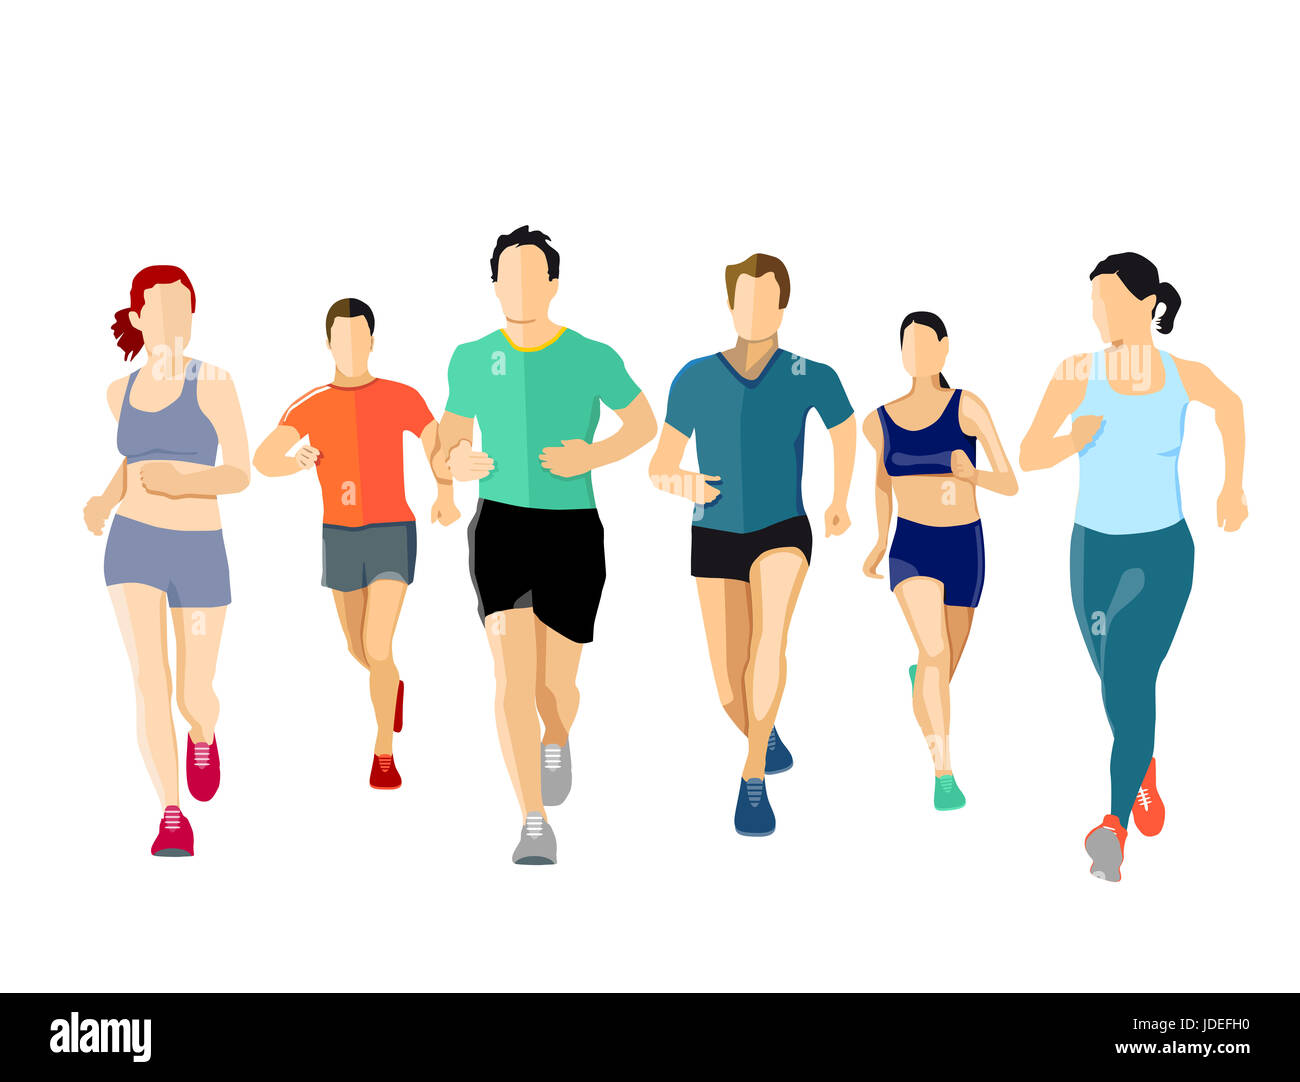 runner, run, walk, marathon, people, group, race, fitness, health, human, speed, quickness, female, winner, color, - Stock Image